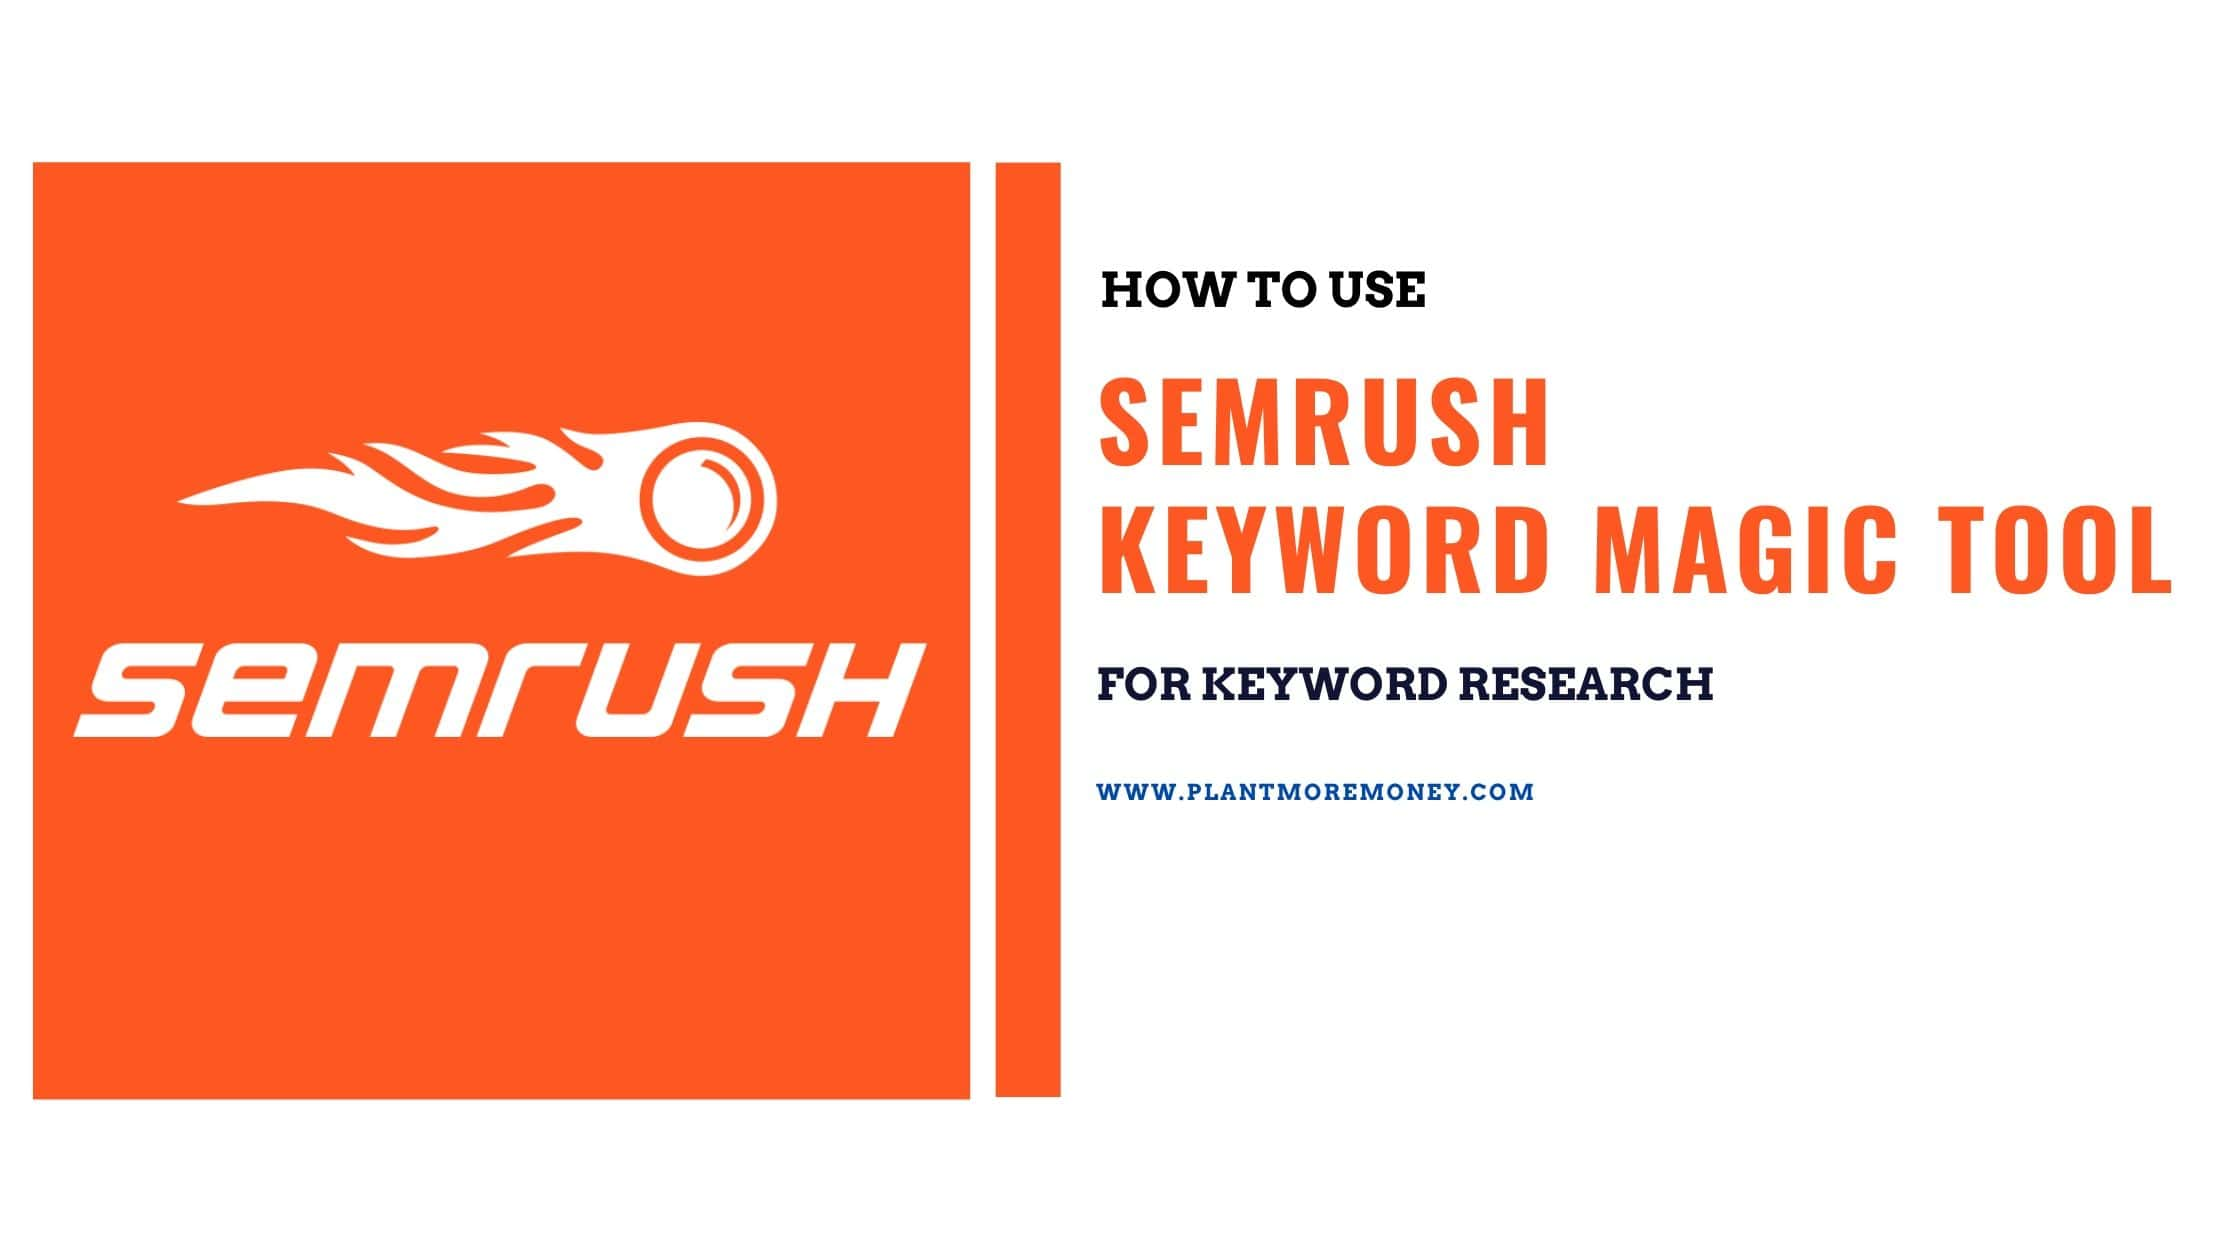 How To Use SEMrush Keyword Magic Tool For Keyword Research?